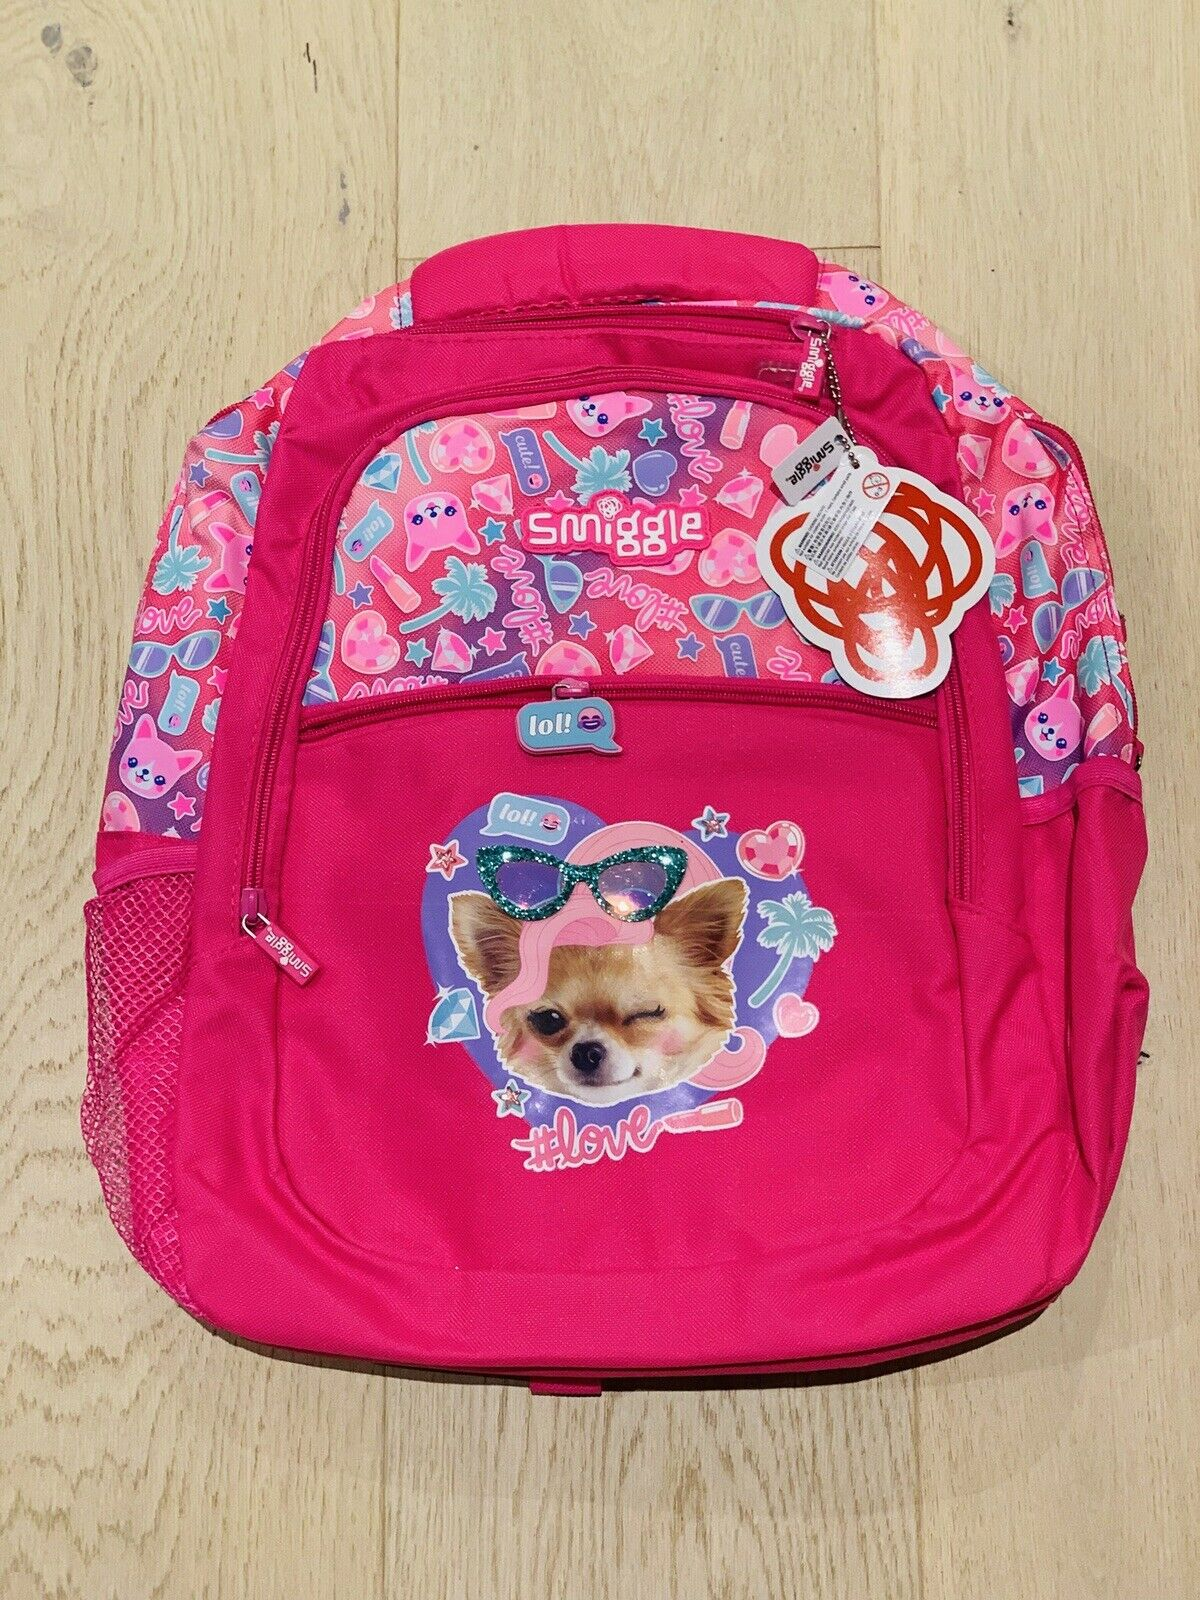 Clearance Sale! Smiggle Stylin' Backpack Pink Dog